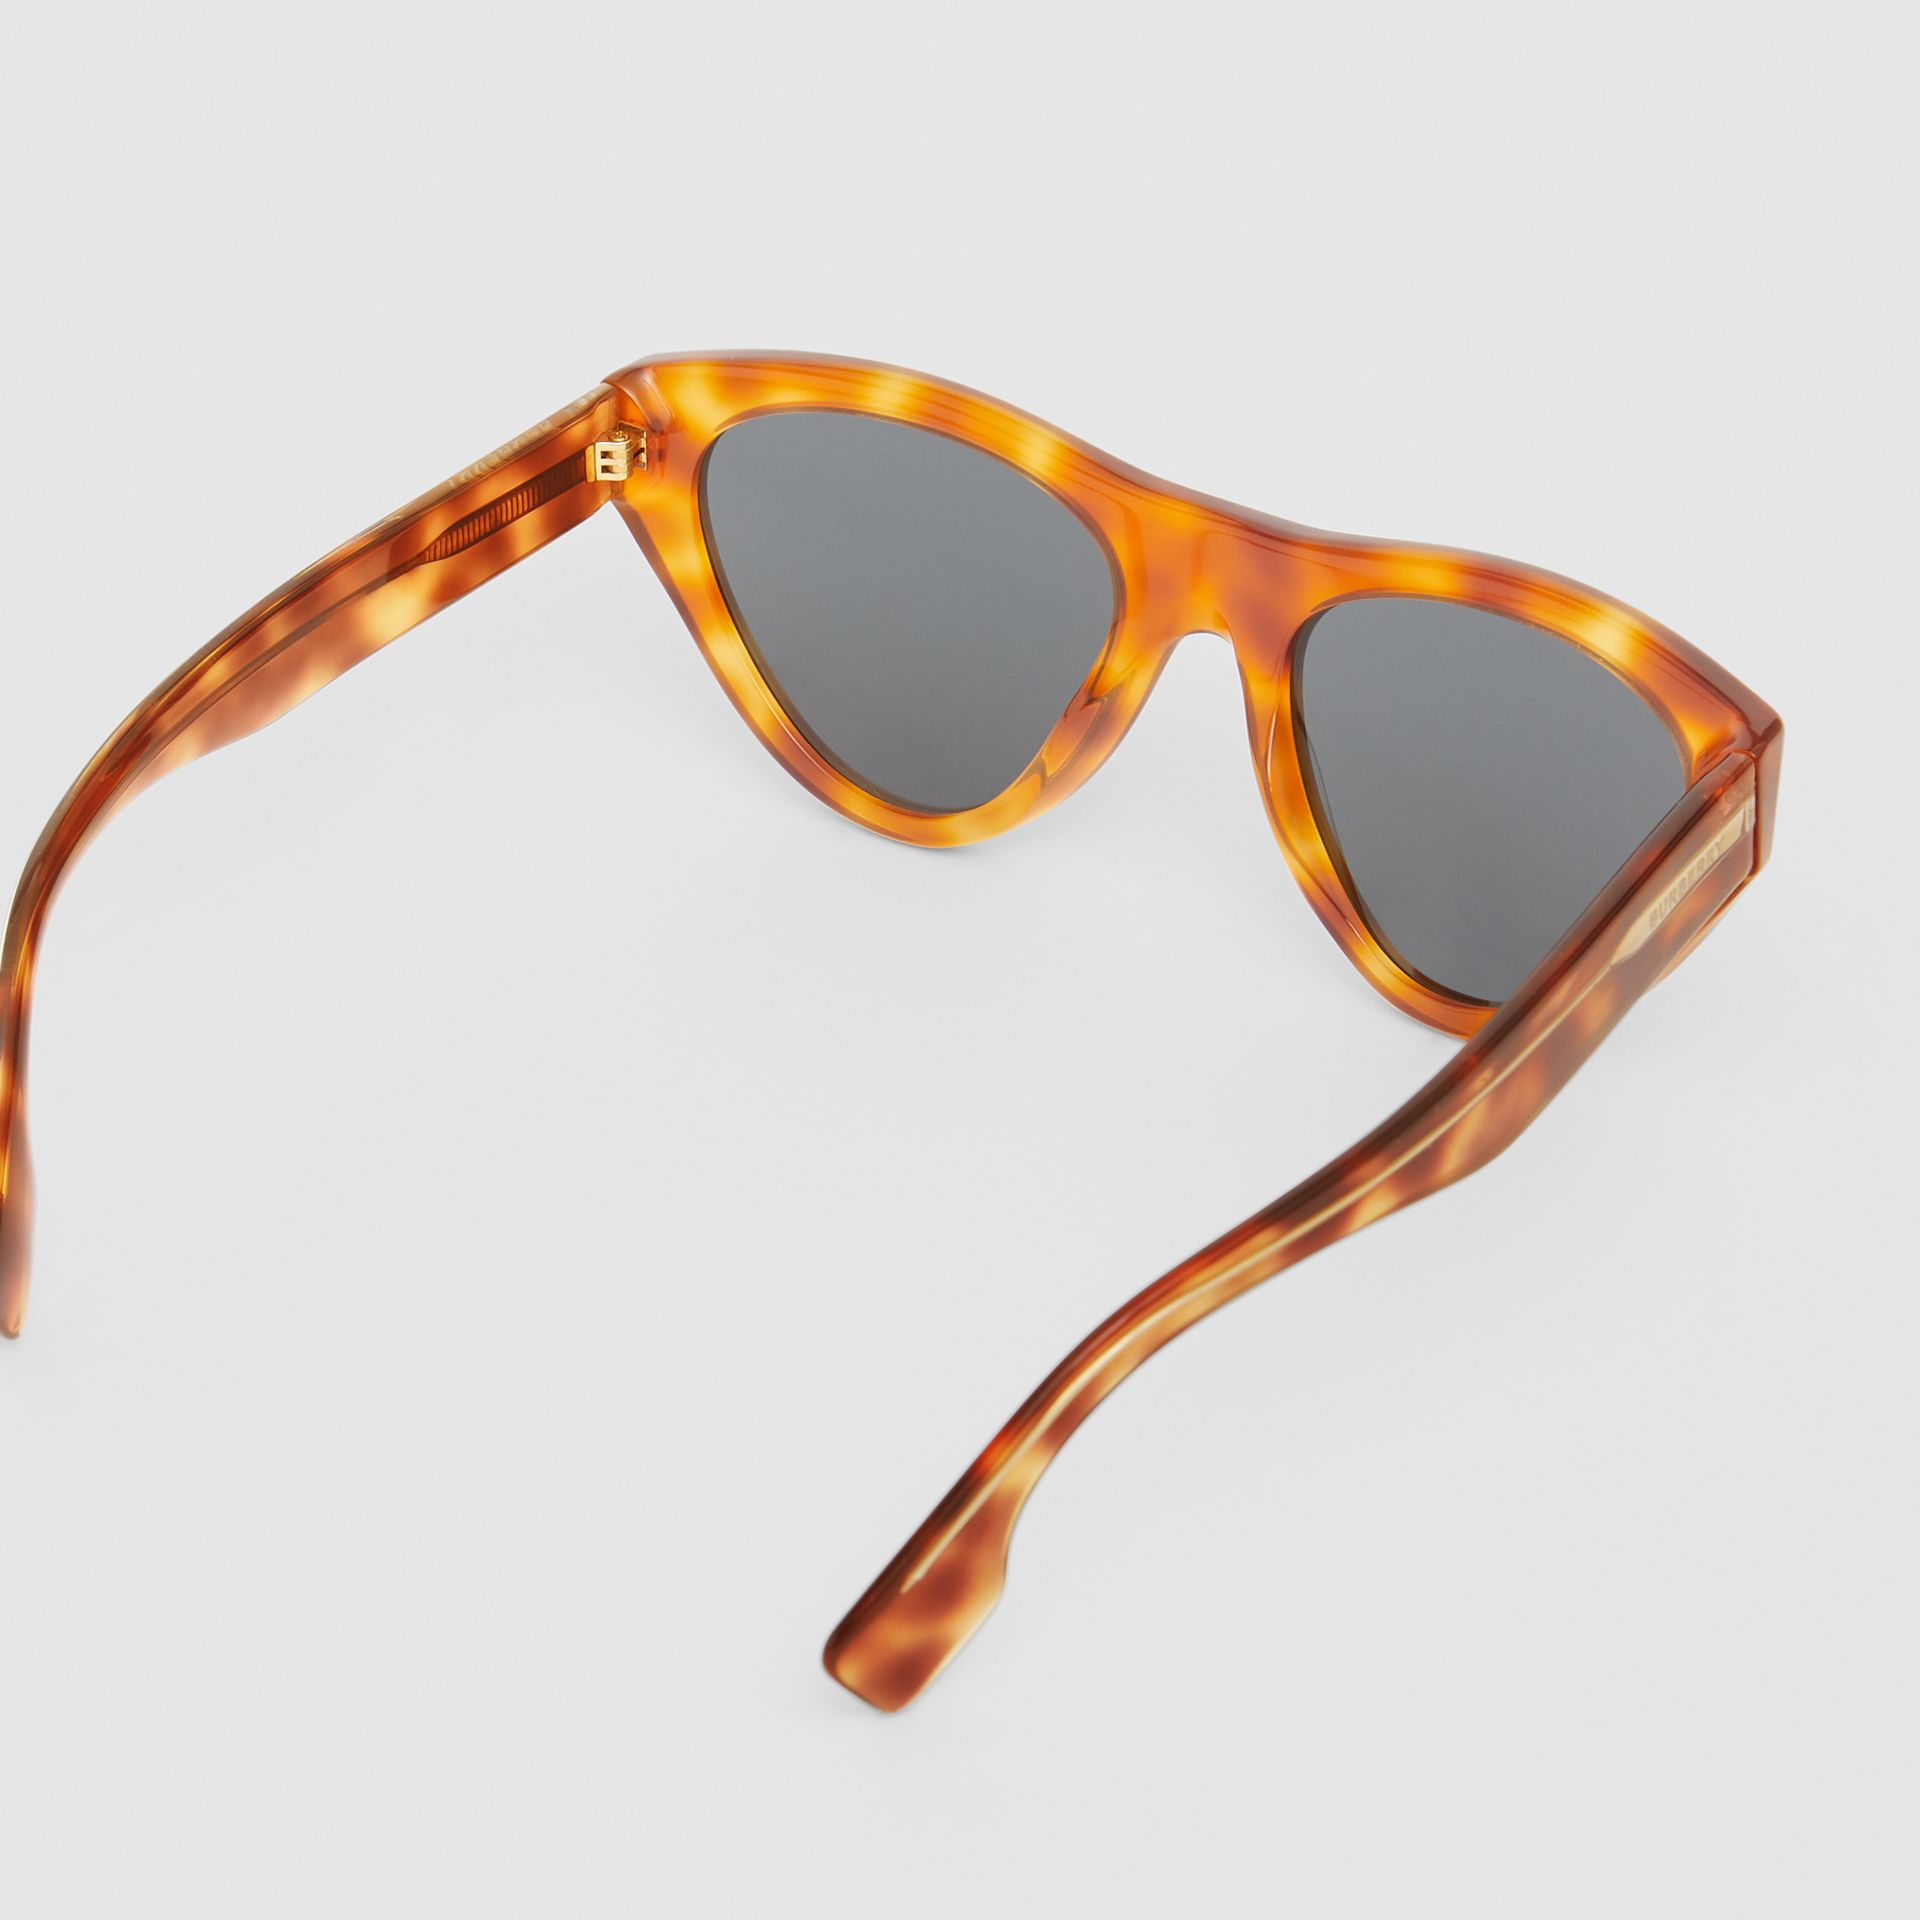 Triangular Frame Sunglasses in Tortoise Amber - Women | Burberry - gallery image 3